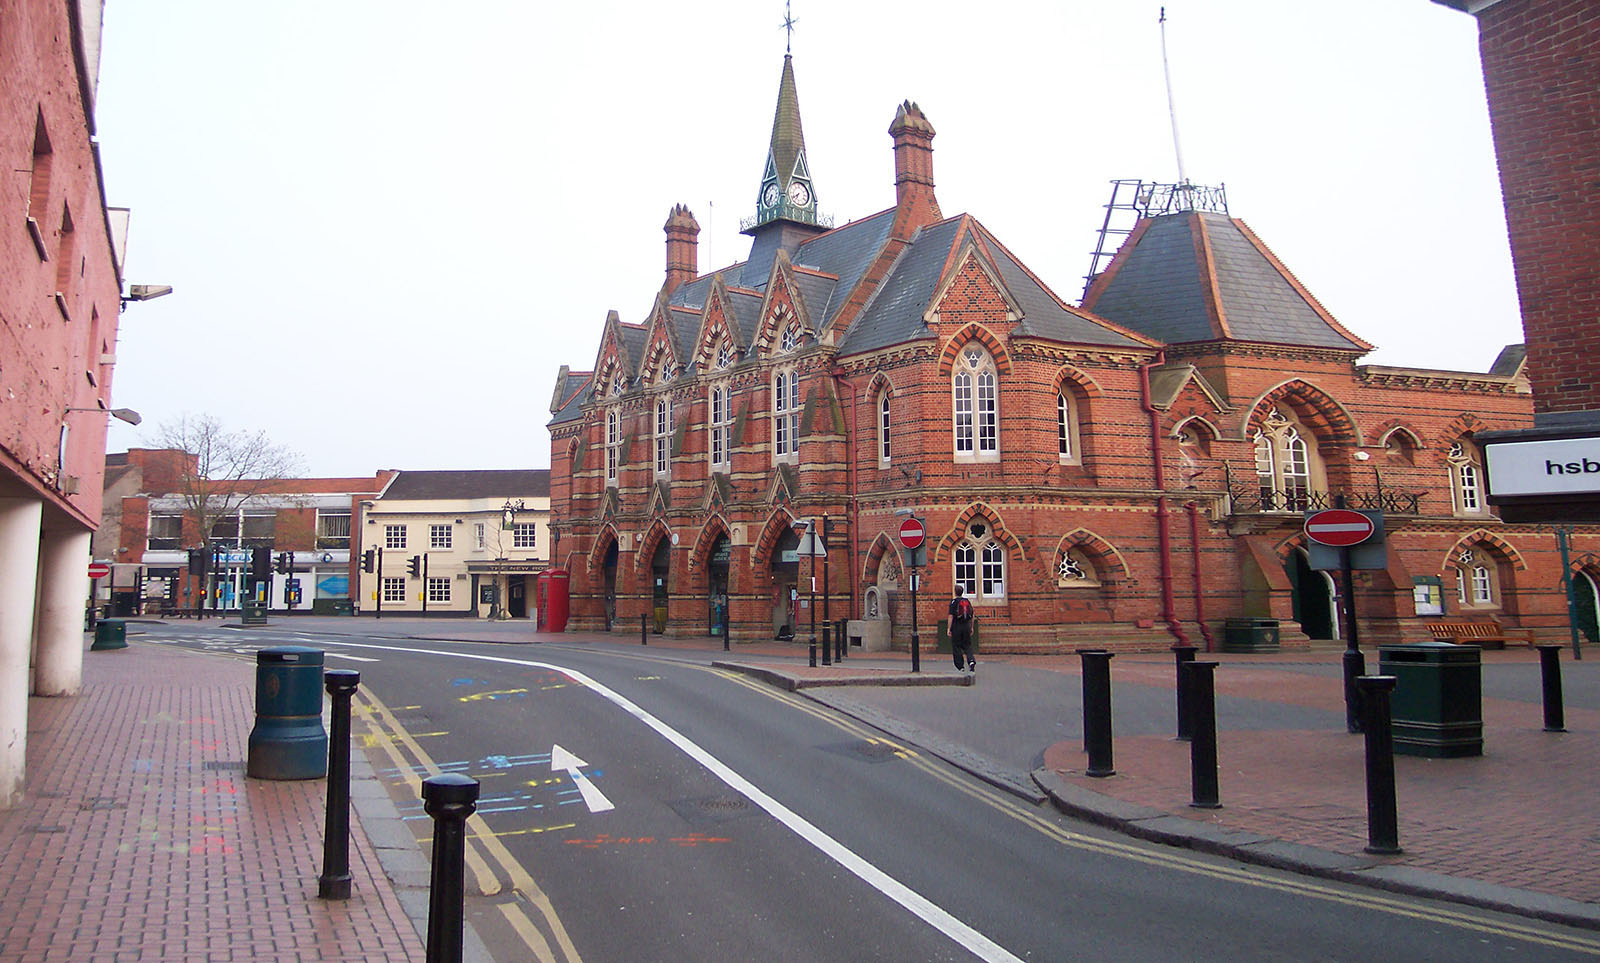 Town hall of Wokingham (Berkshire, England); built in 1860 on the site of the guildhall.